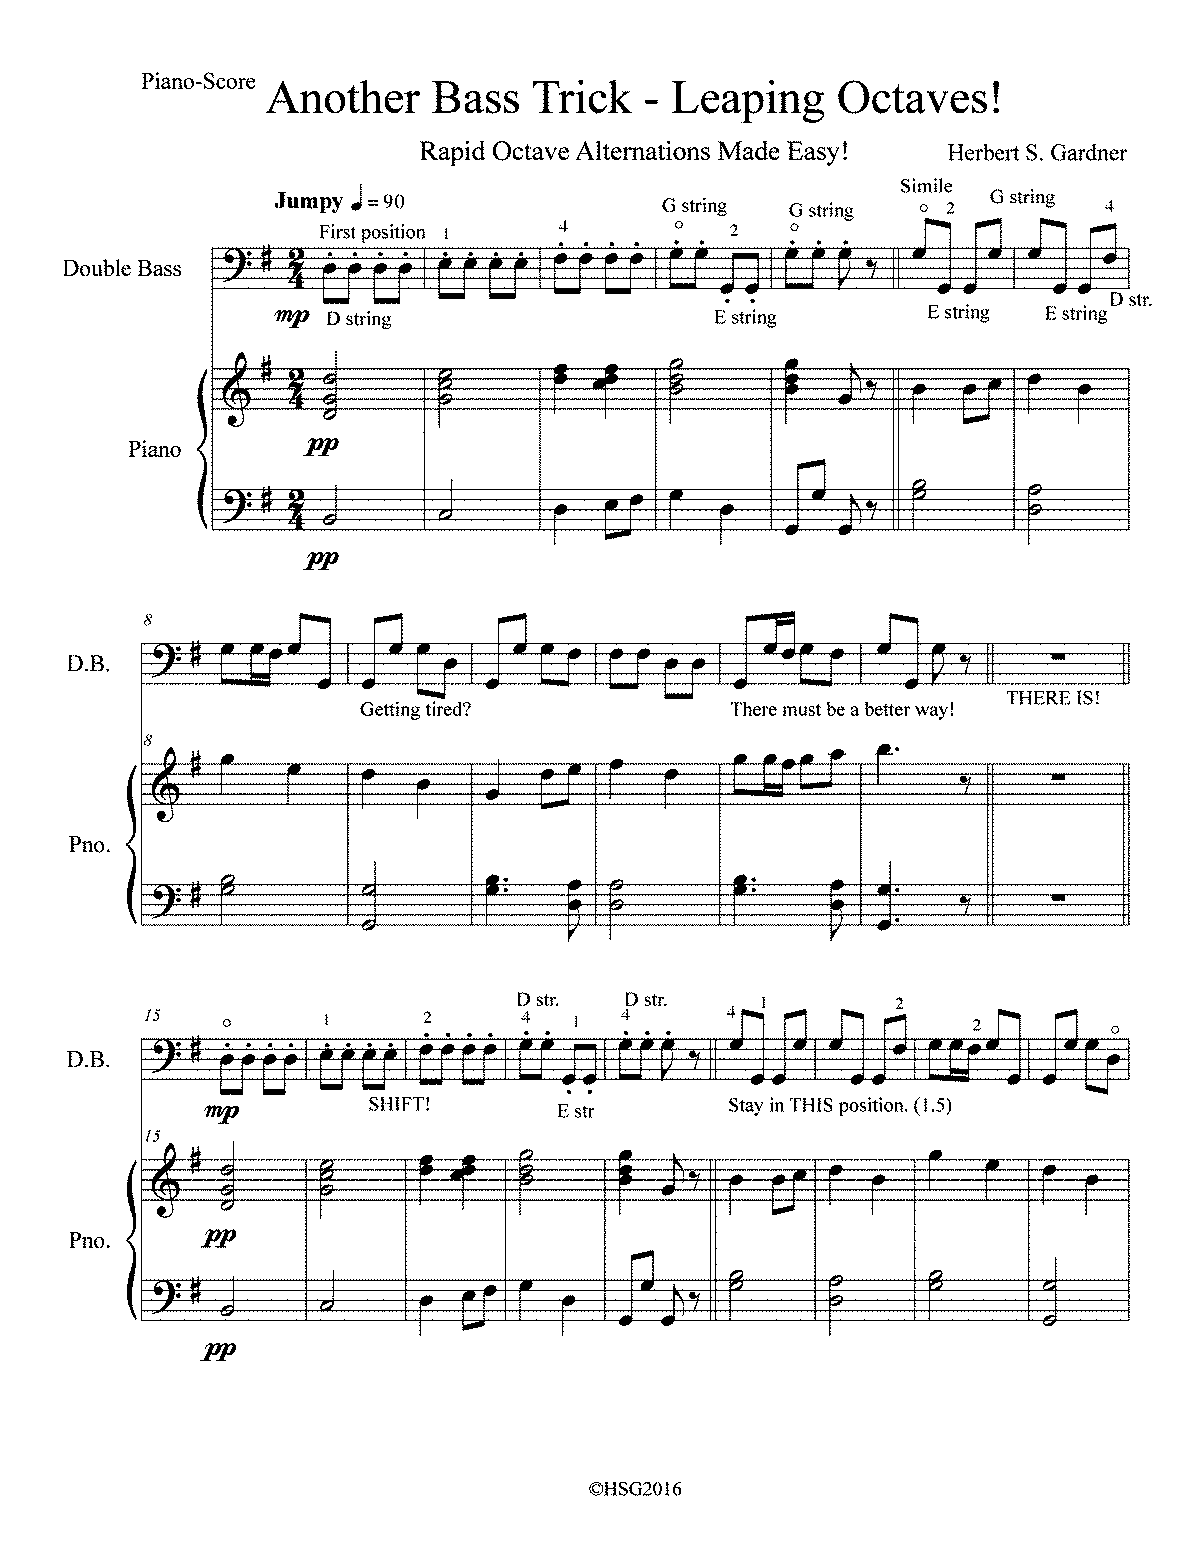 PMLP695442-Another Bass Trick - Leaping Octaves! rev. 2.pdf